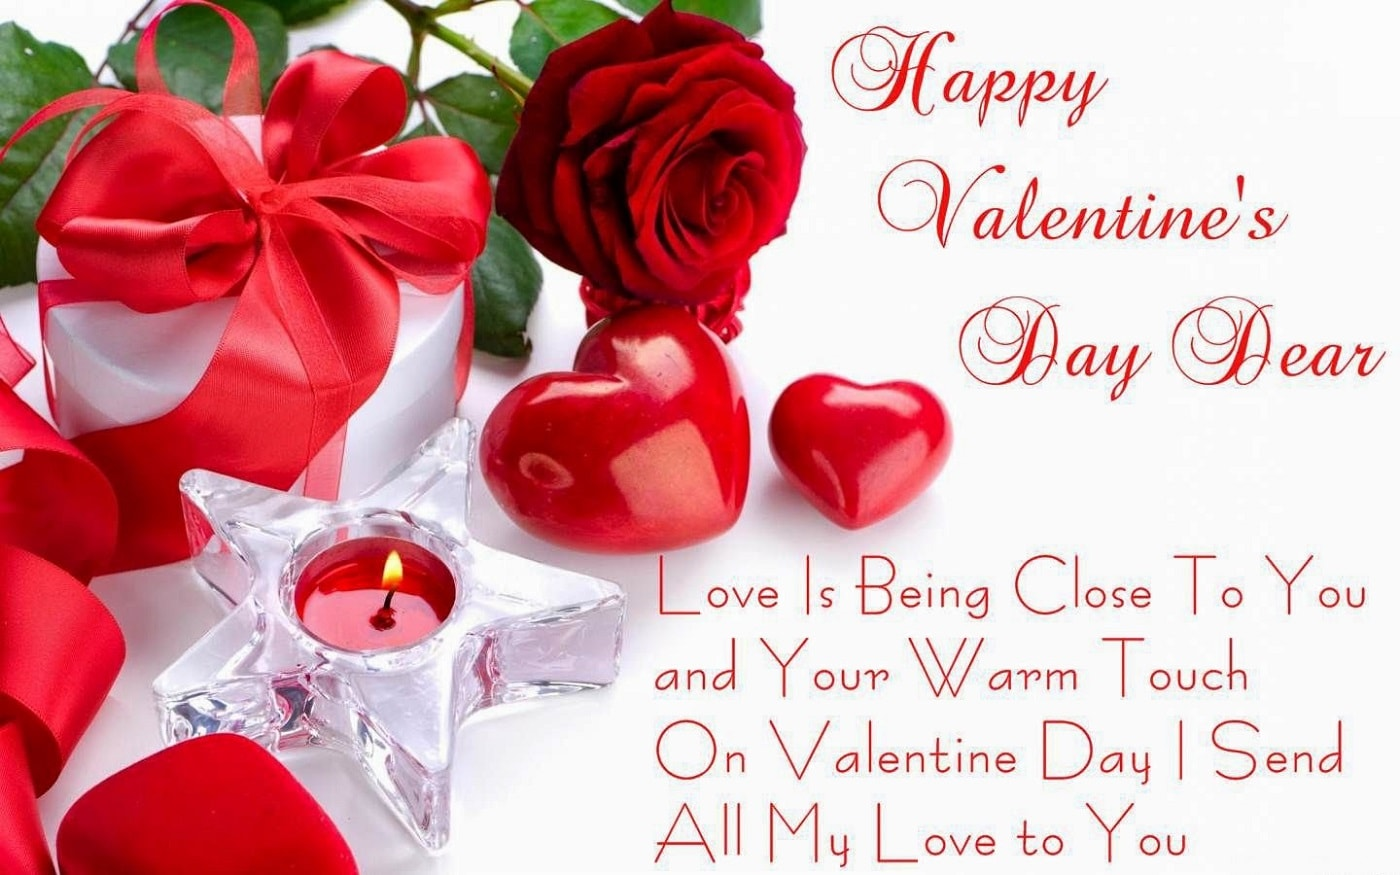 Happy Valentine's Day Quotes for Friends for 2018